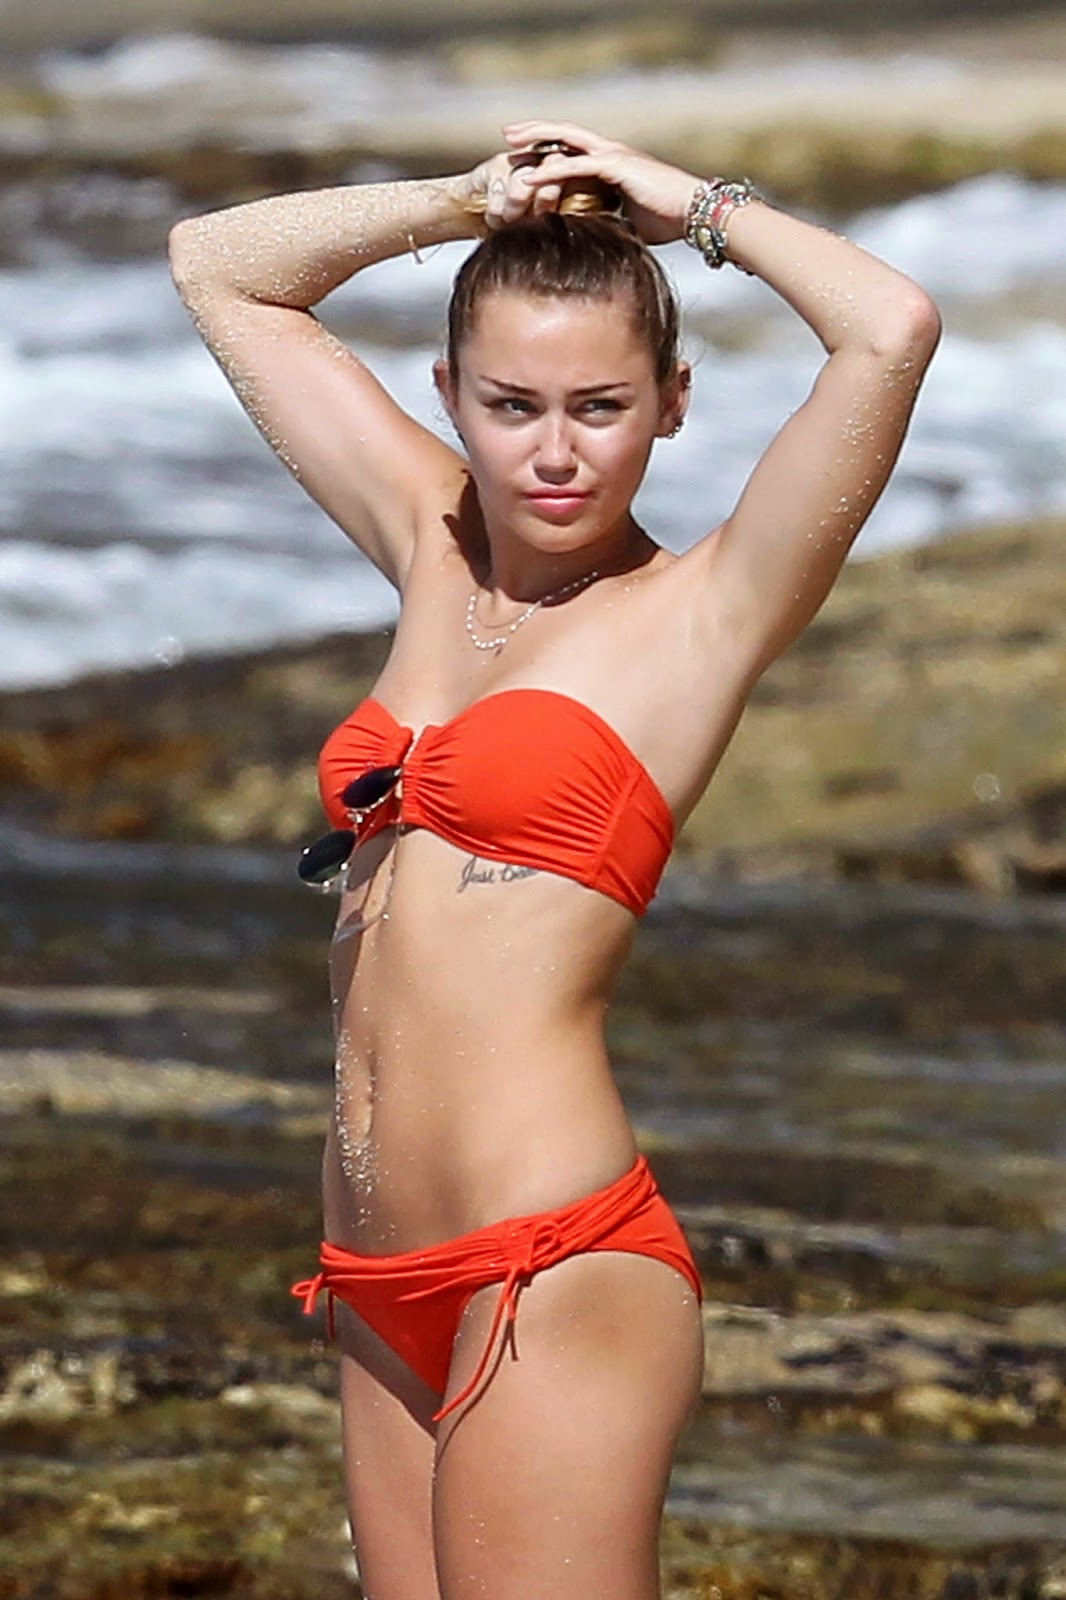 Miley Cyrus Hannah Montana actor is famous. It turns out Miley Cyrus likes to buy bikini Victoria Secret products. Here is Miley Cyrus use red bikini.